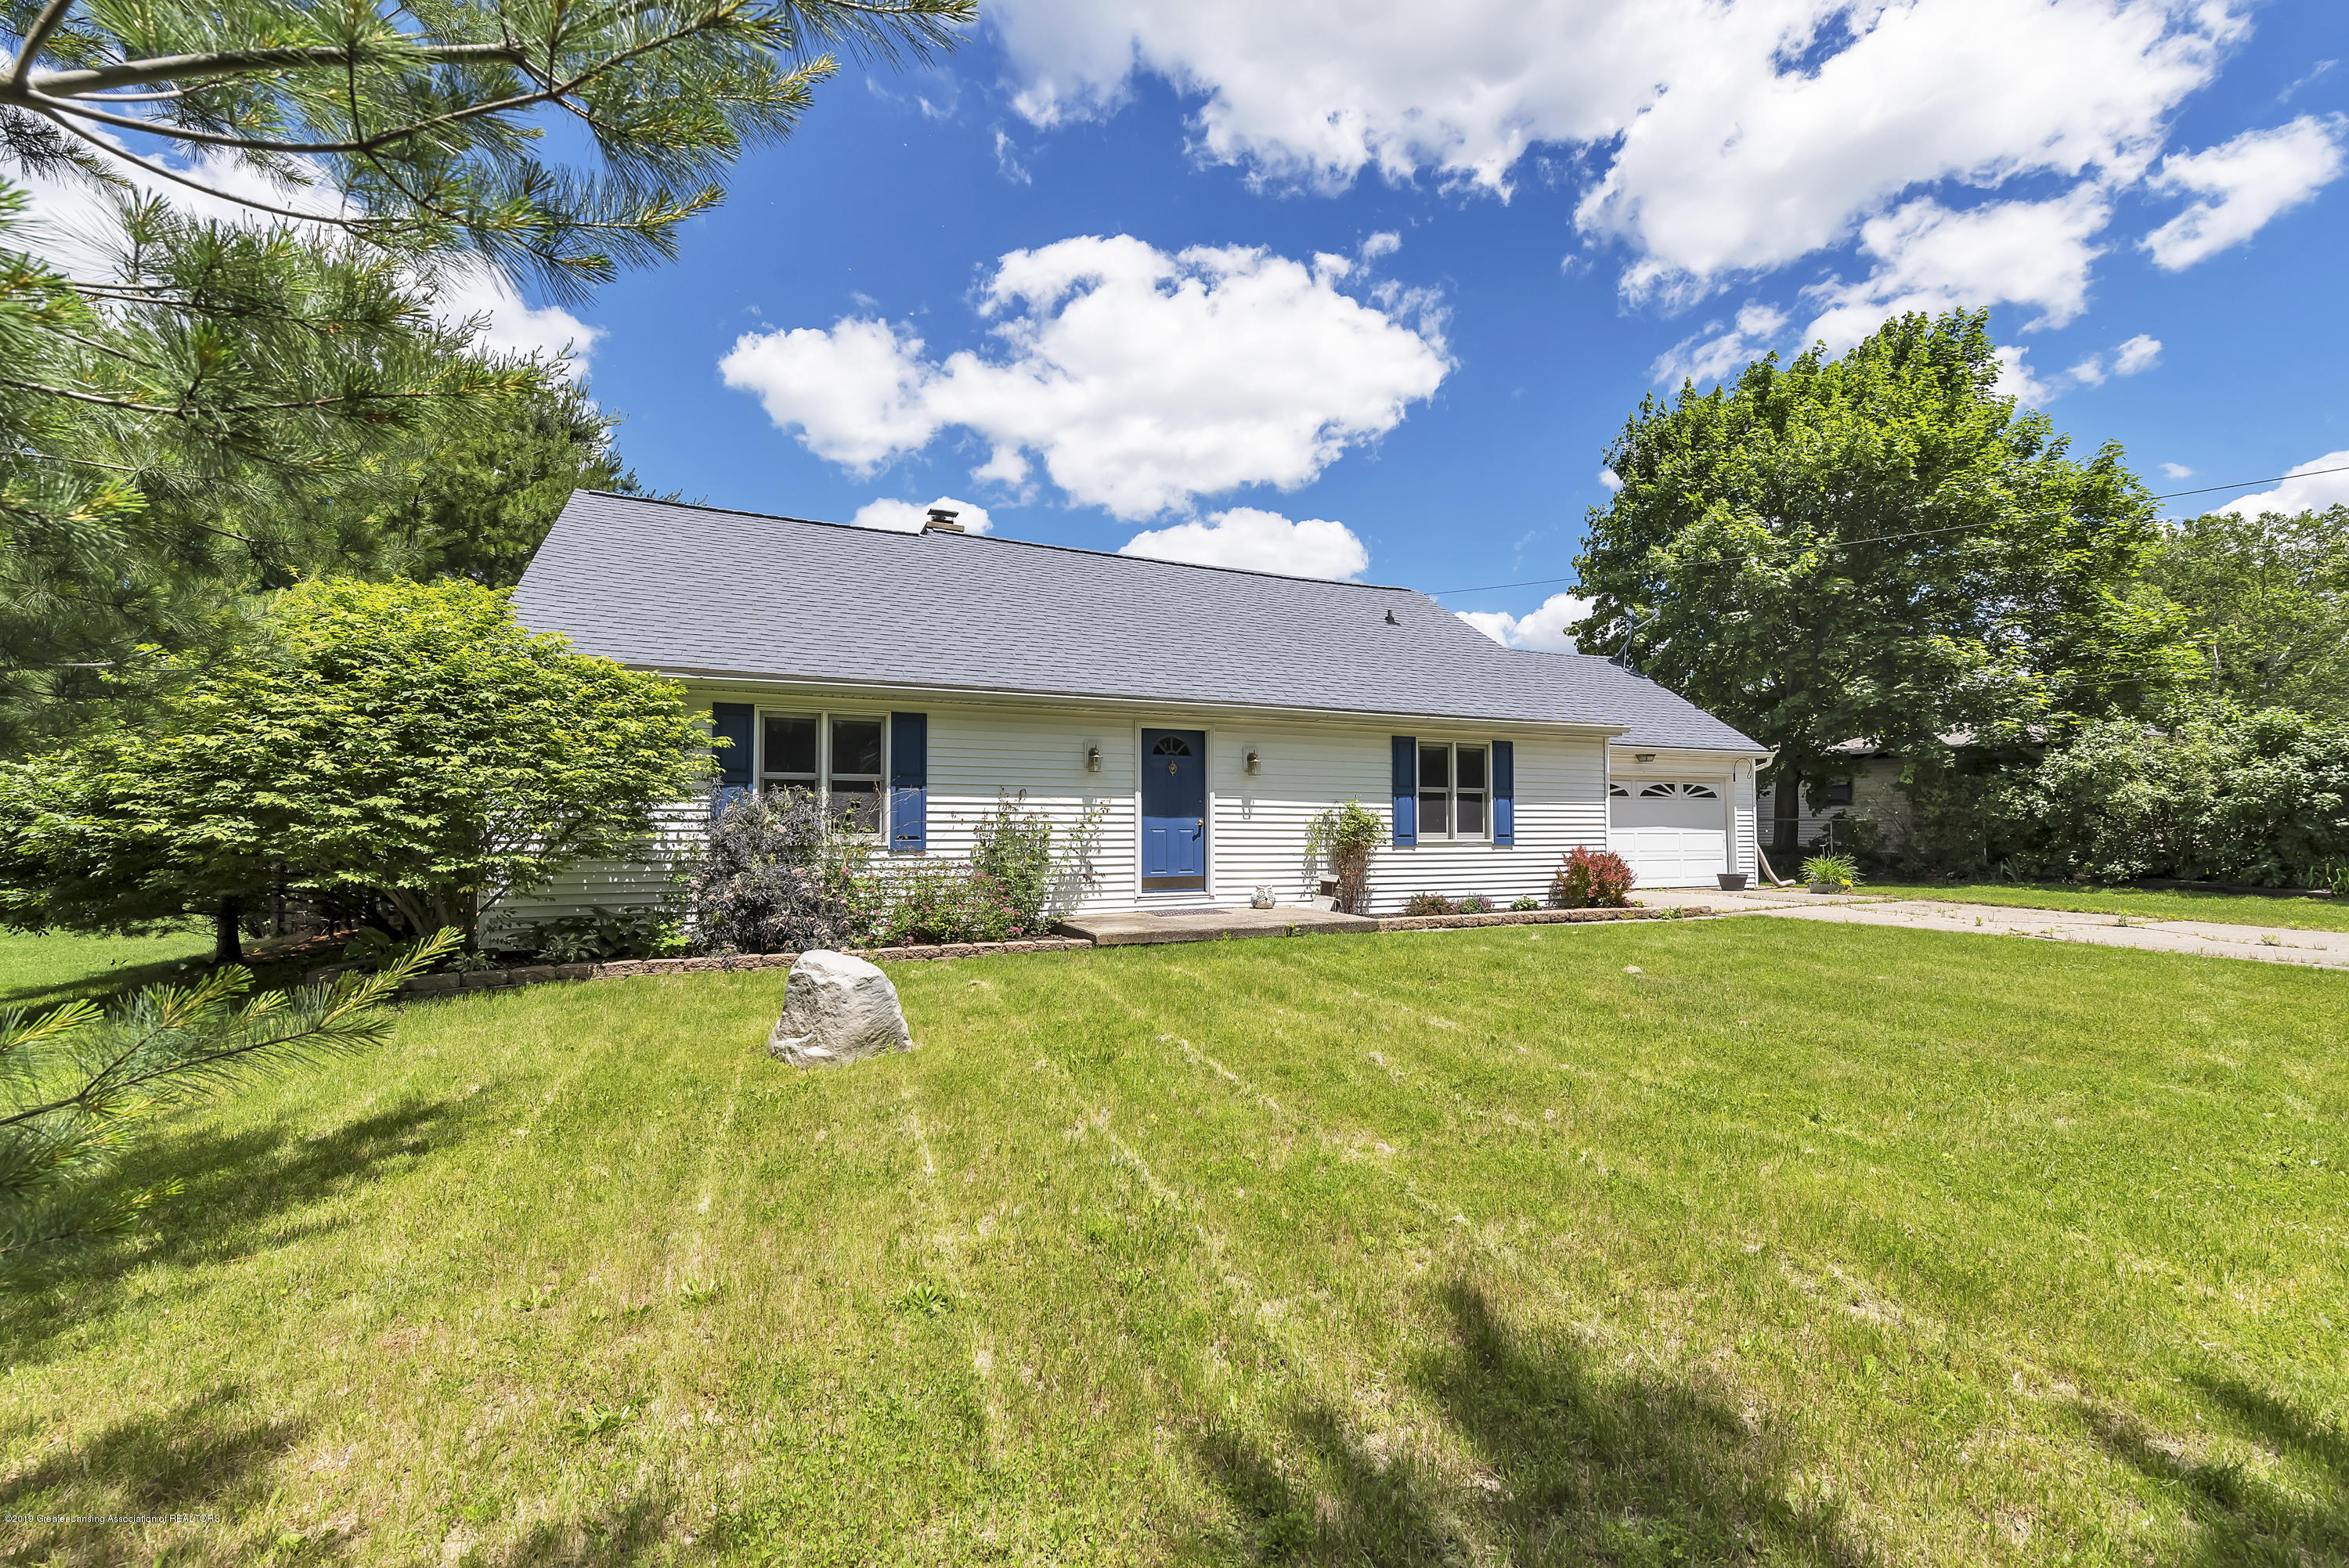 699 Sherwood Rd - 699-E-Sherwood-Rd-Williamston-windowstil - 2